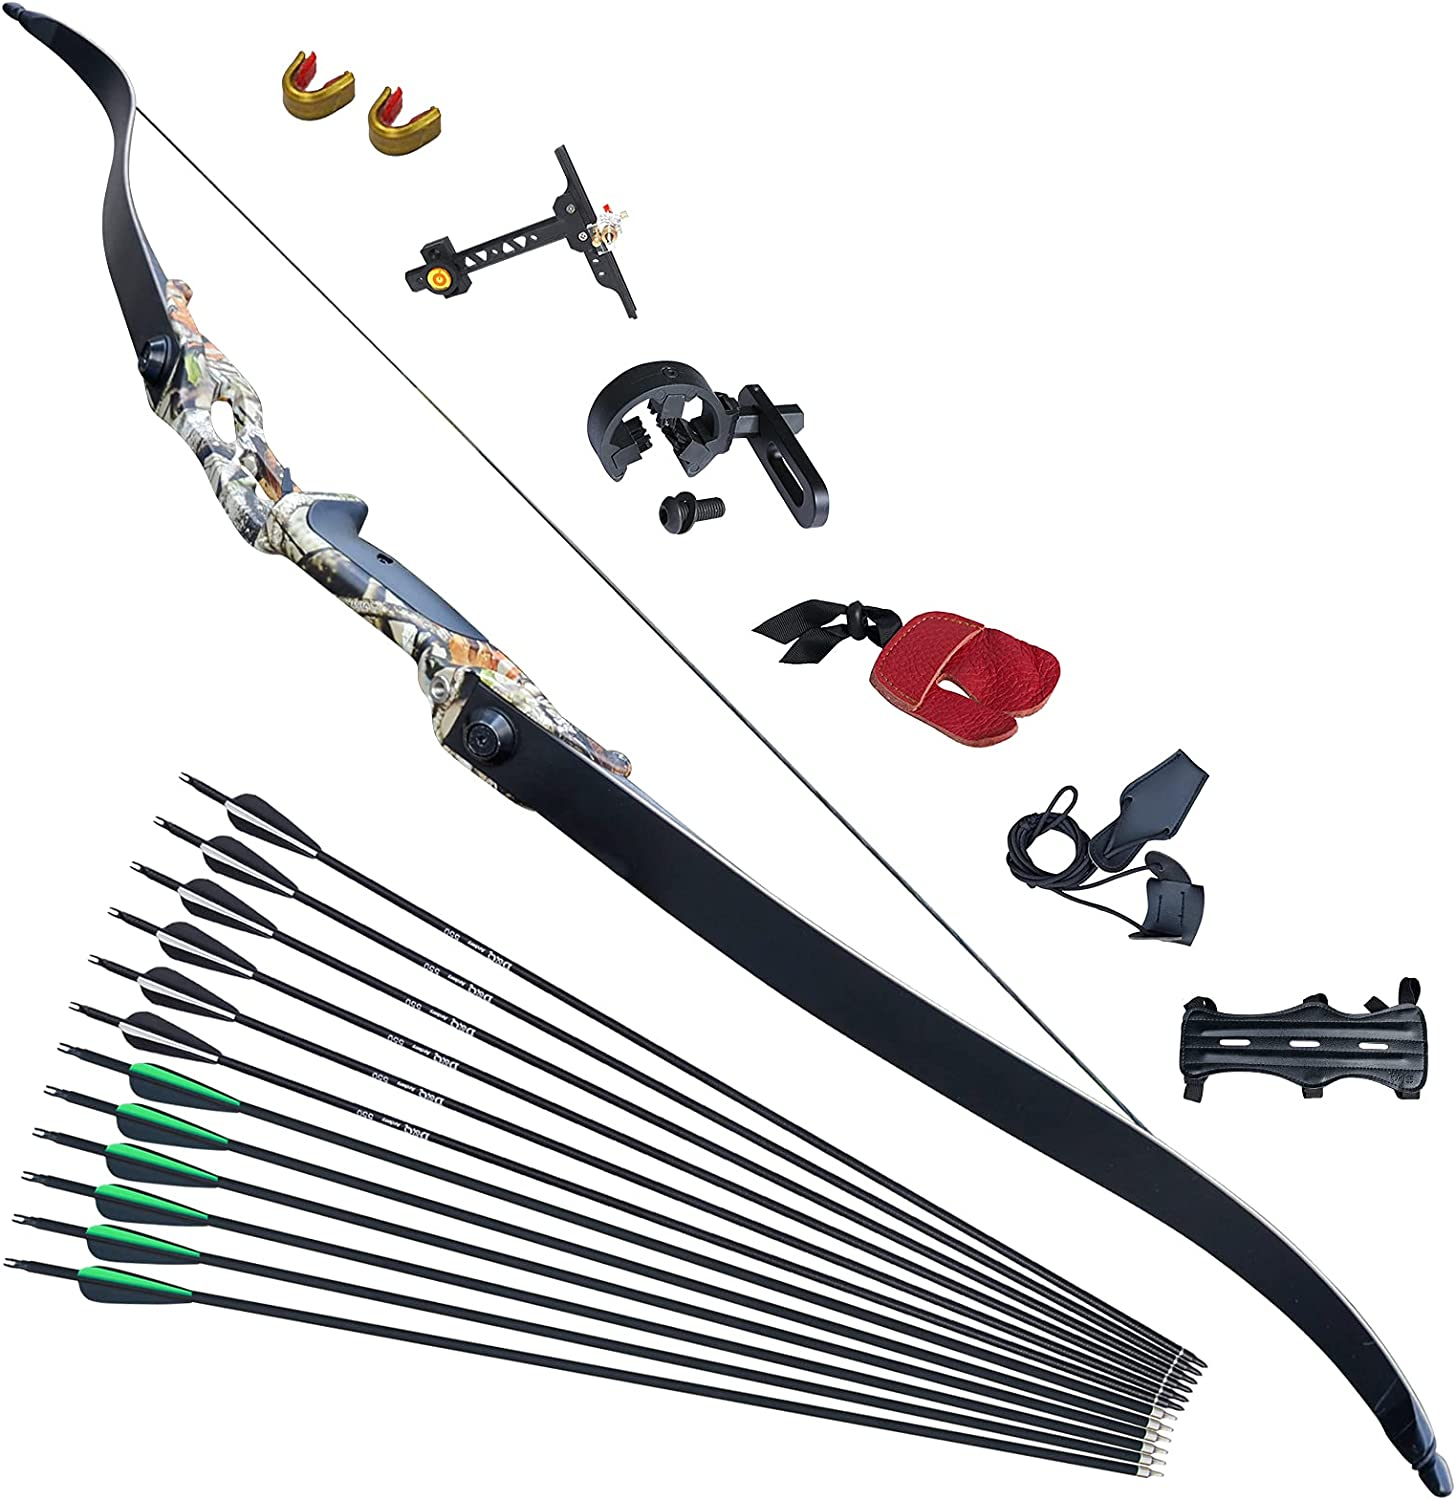 DQ unisex Recurve Bow and Arrow Set Takedown Beginner 56